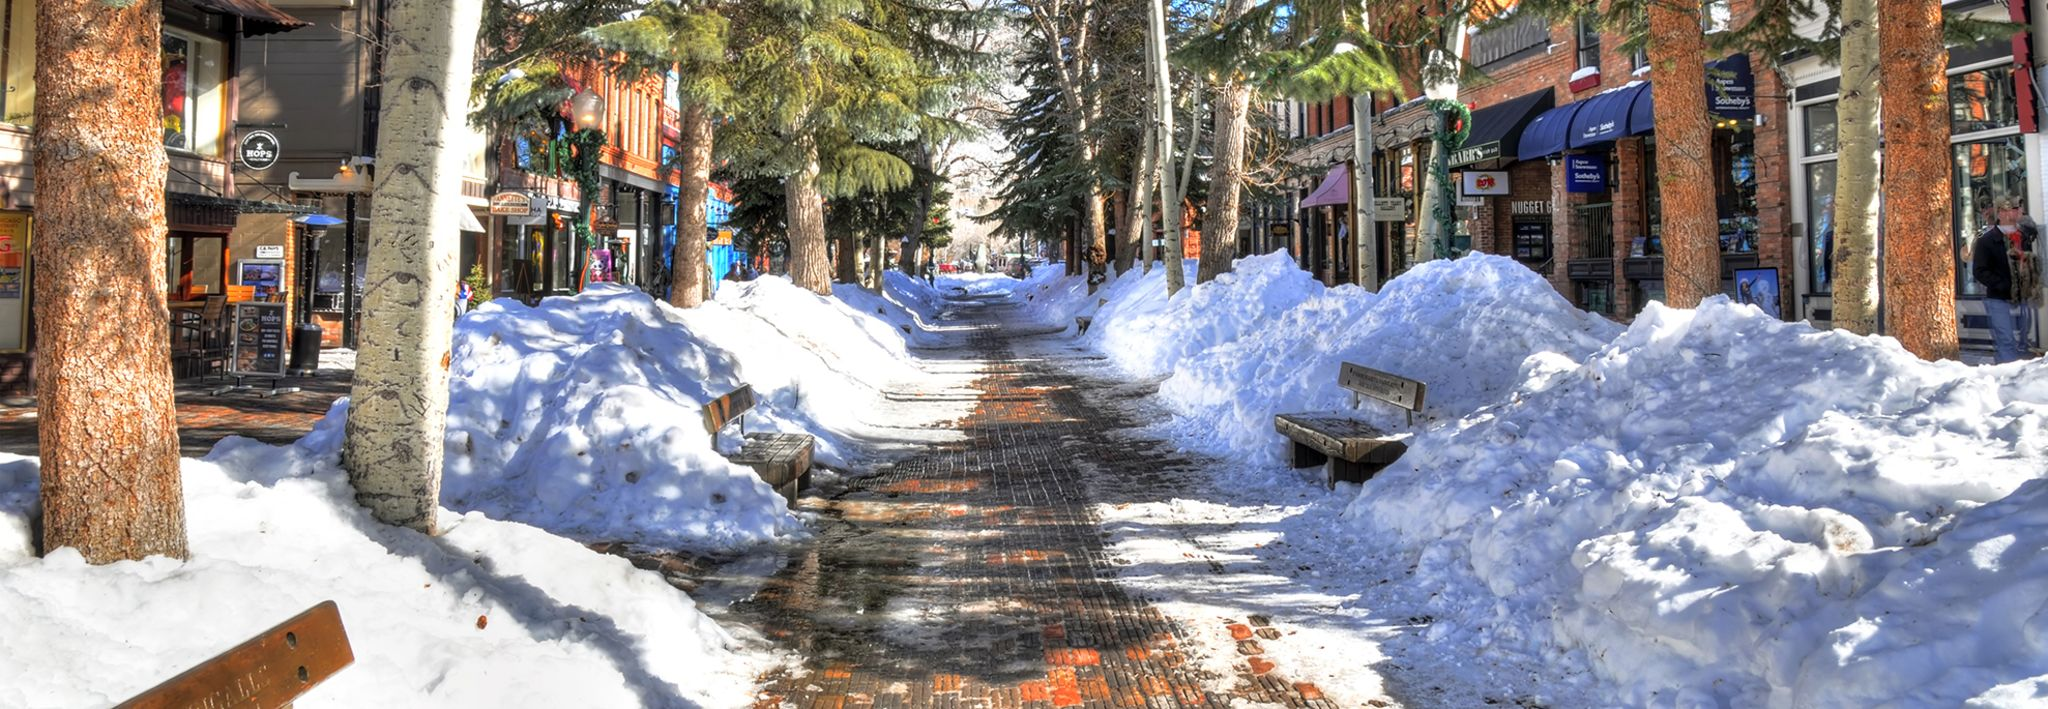 Snow pilled up on the sides of a sidewalk in Aspen, Colorado.